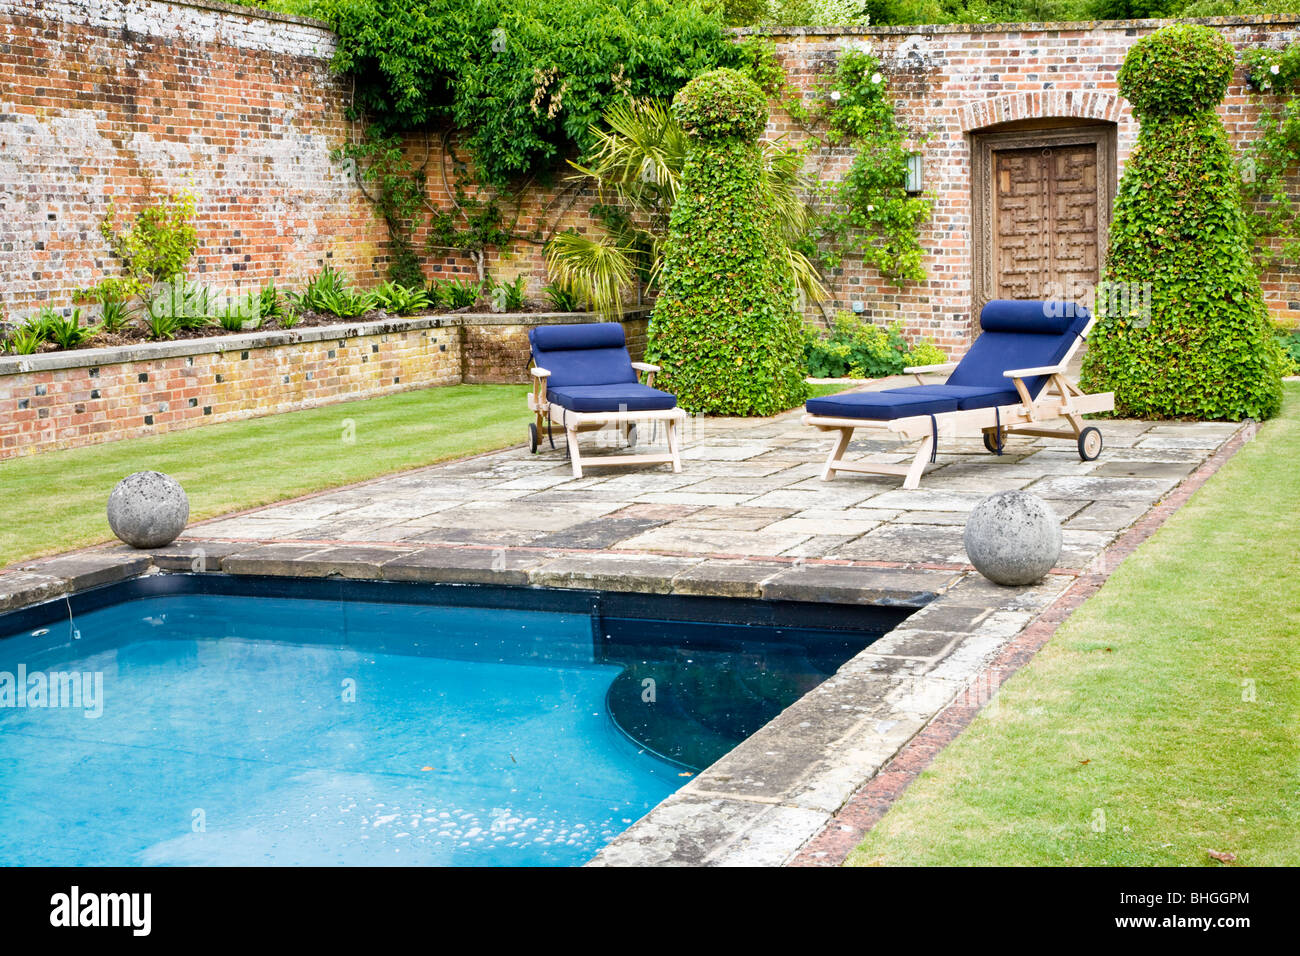 Swimming pool in a walled garden in the grounds of an for English garden pool